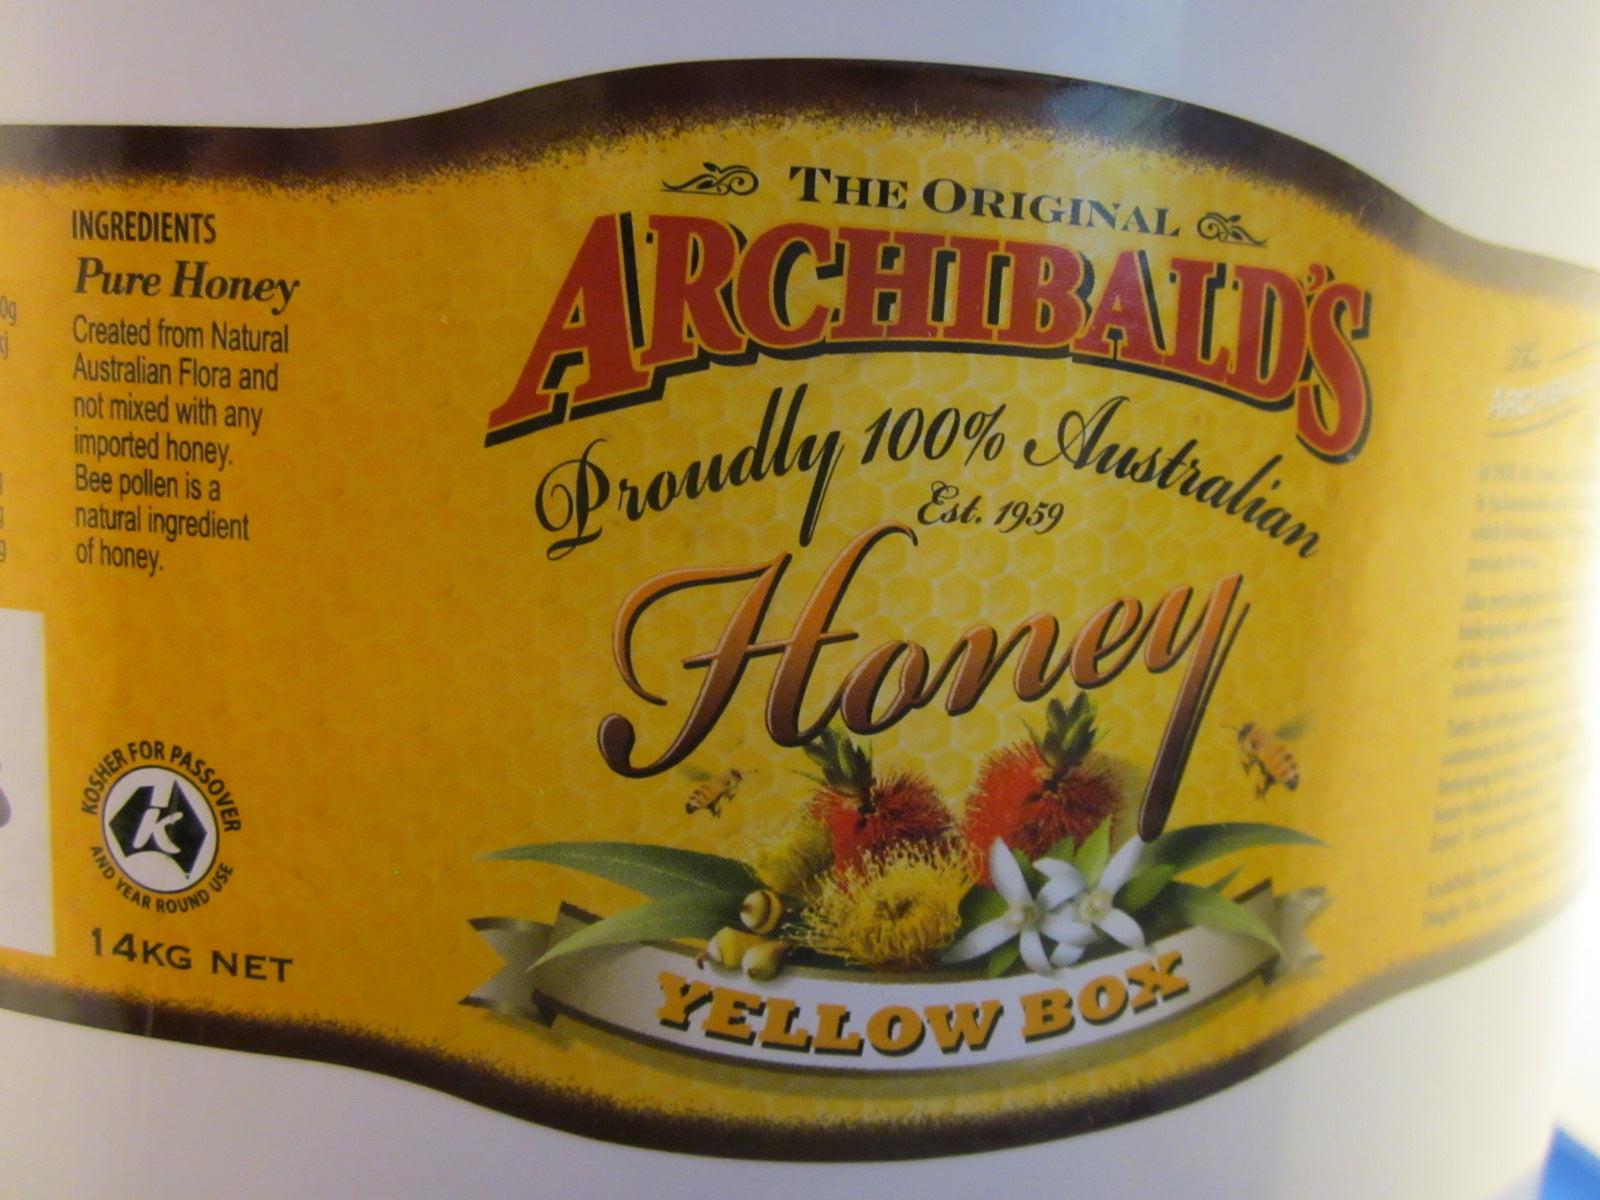 Yellow box (eucalyptus) honey, Archibalds, 14kg tub